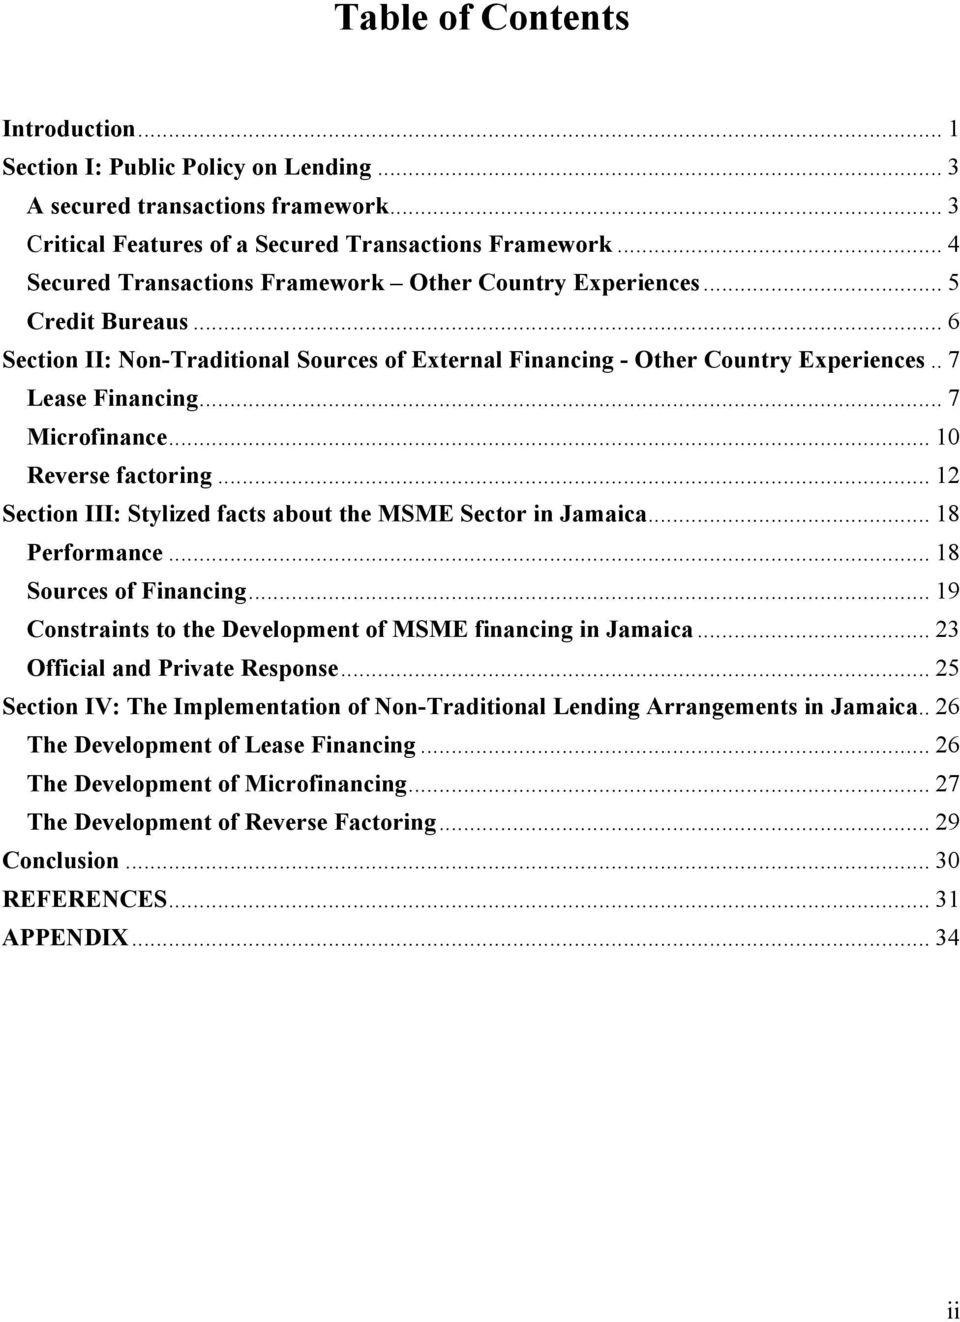 .. 7 Microfinance... 10 Reverse factoring... 12 Section III: Stylized facts about the MSME Sector in Jamaica... 18 Performance... 18 Sources of Financing.